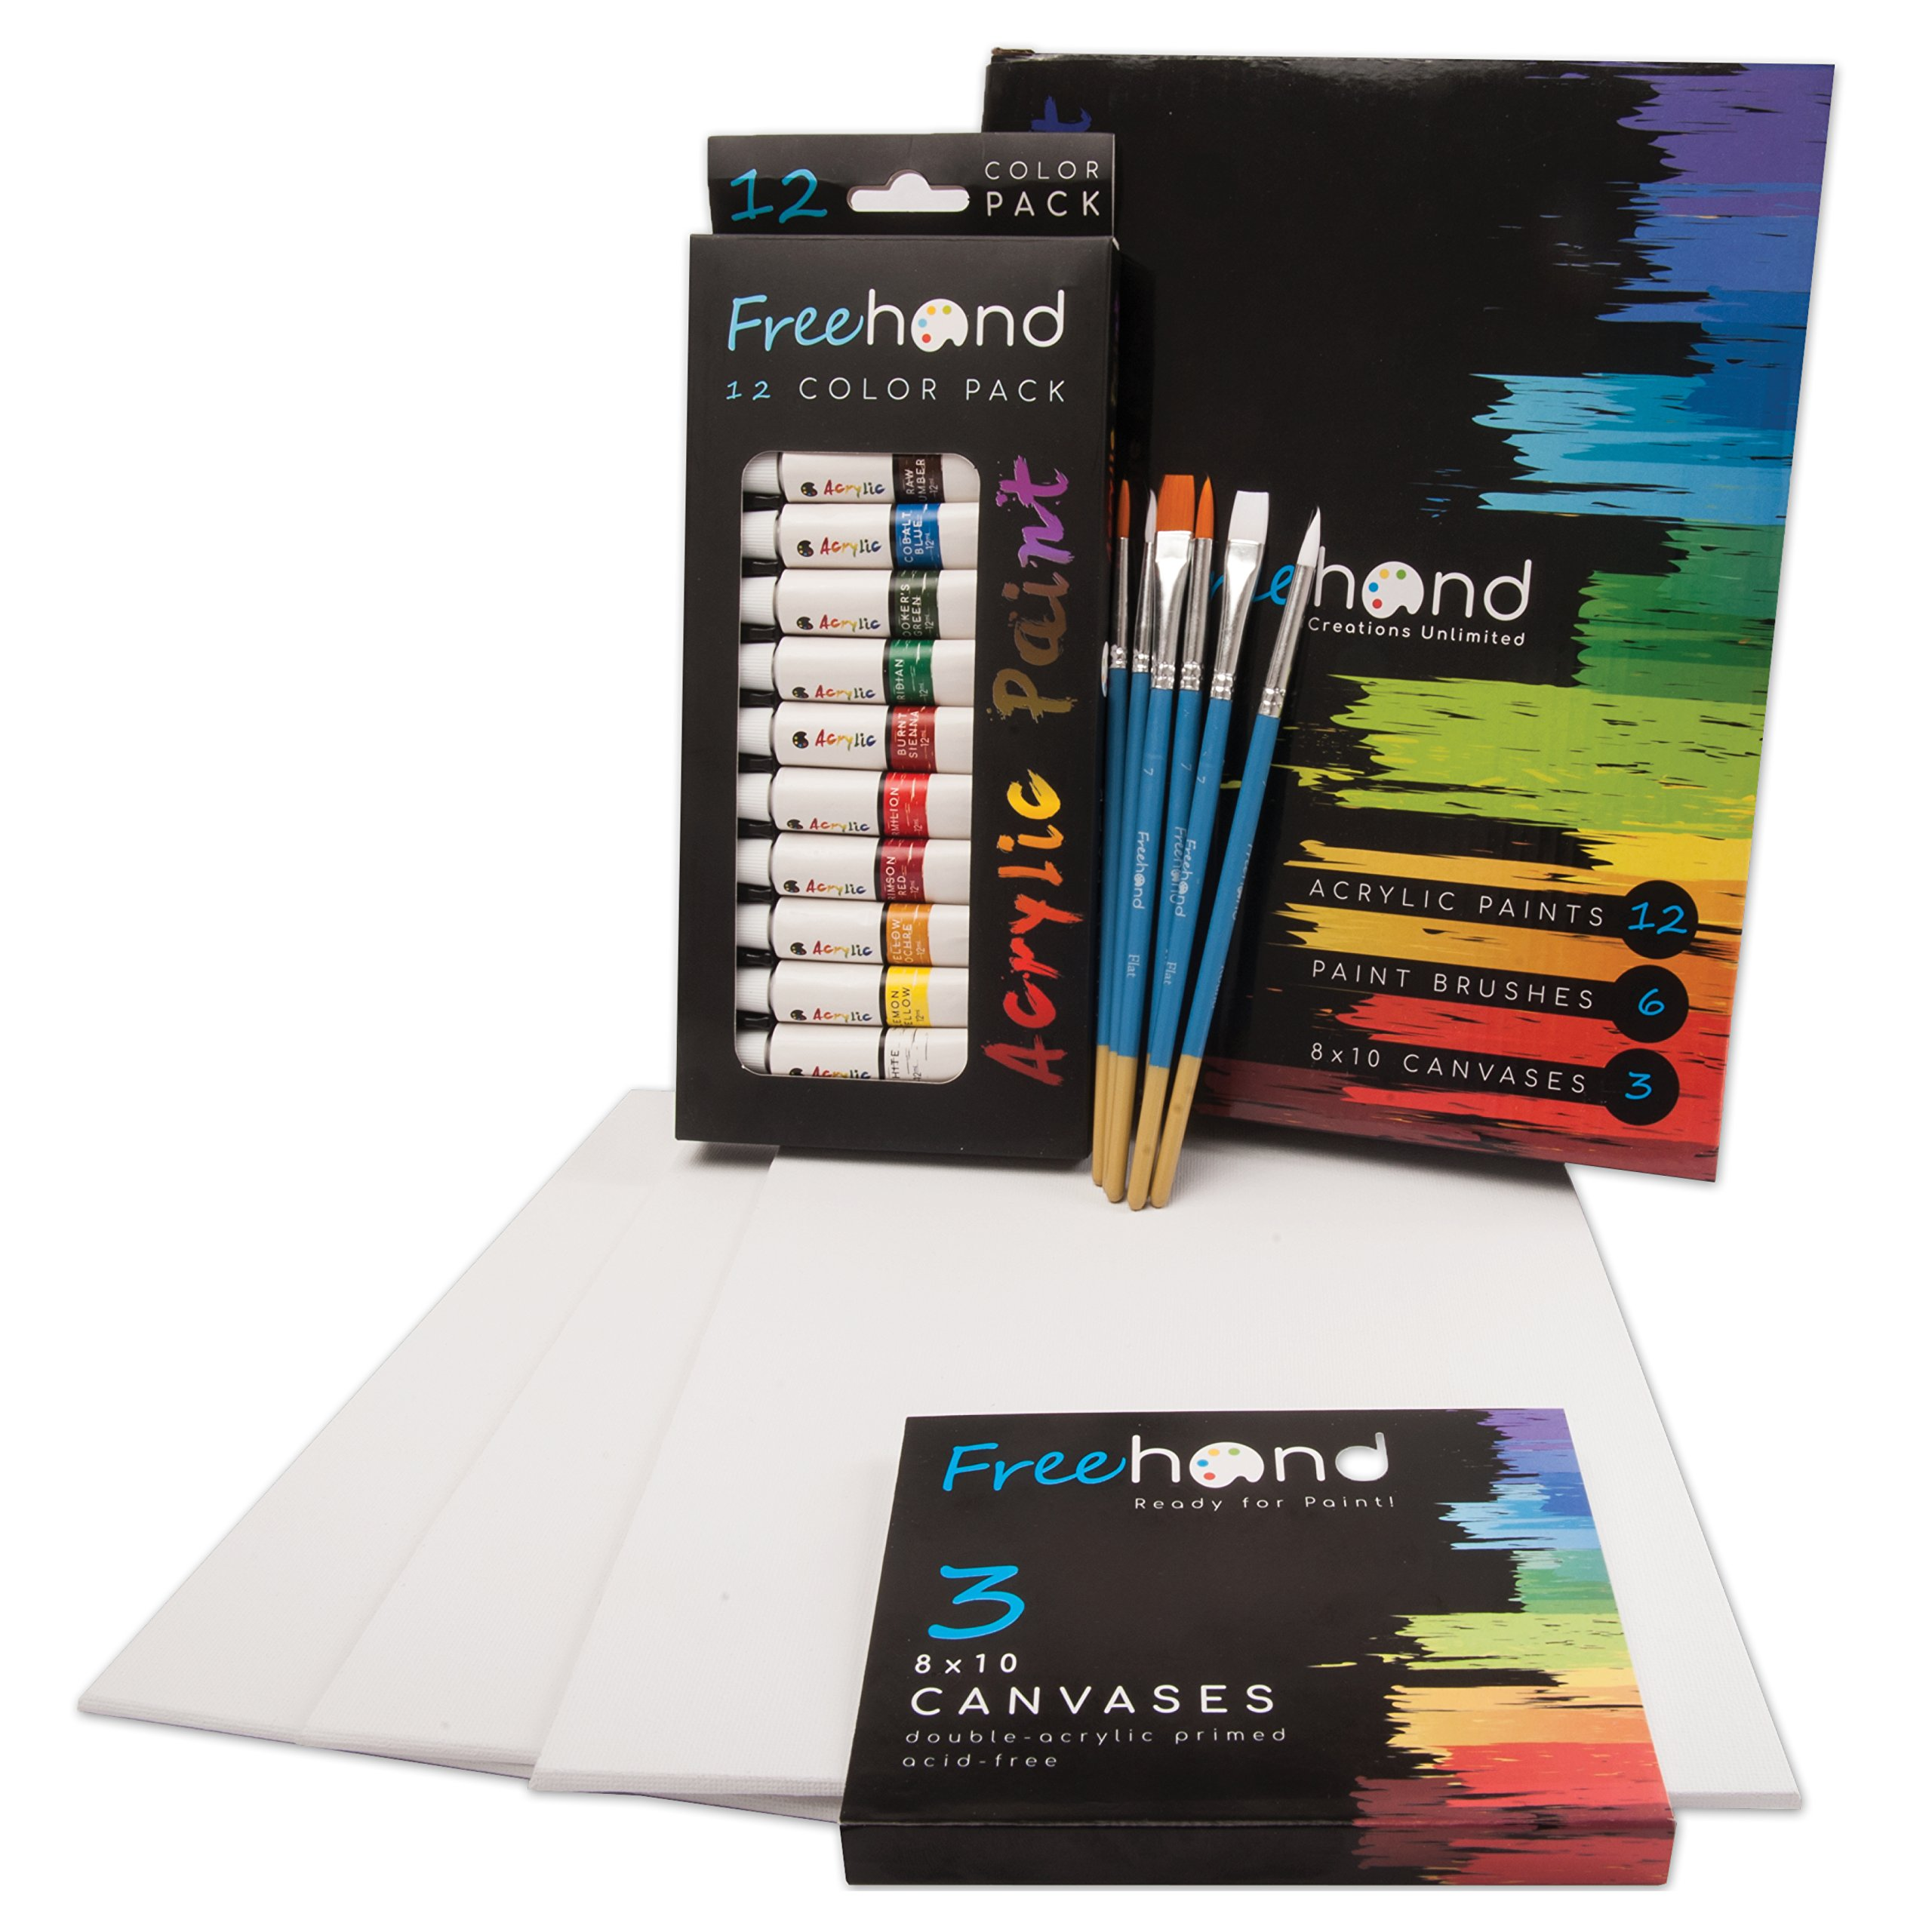 Acrylic Paints - 12 Acrylic Paint Tubes - 6 Paint Brushes - 3 Canvas Panels - Ultimate Acrylic Paint Set